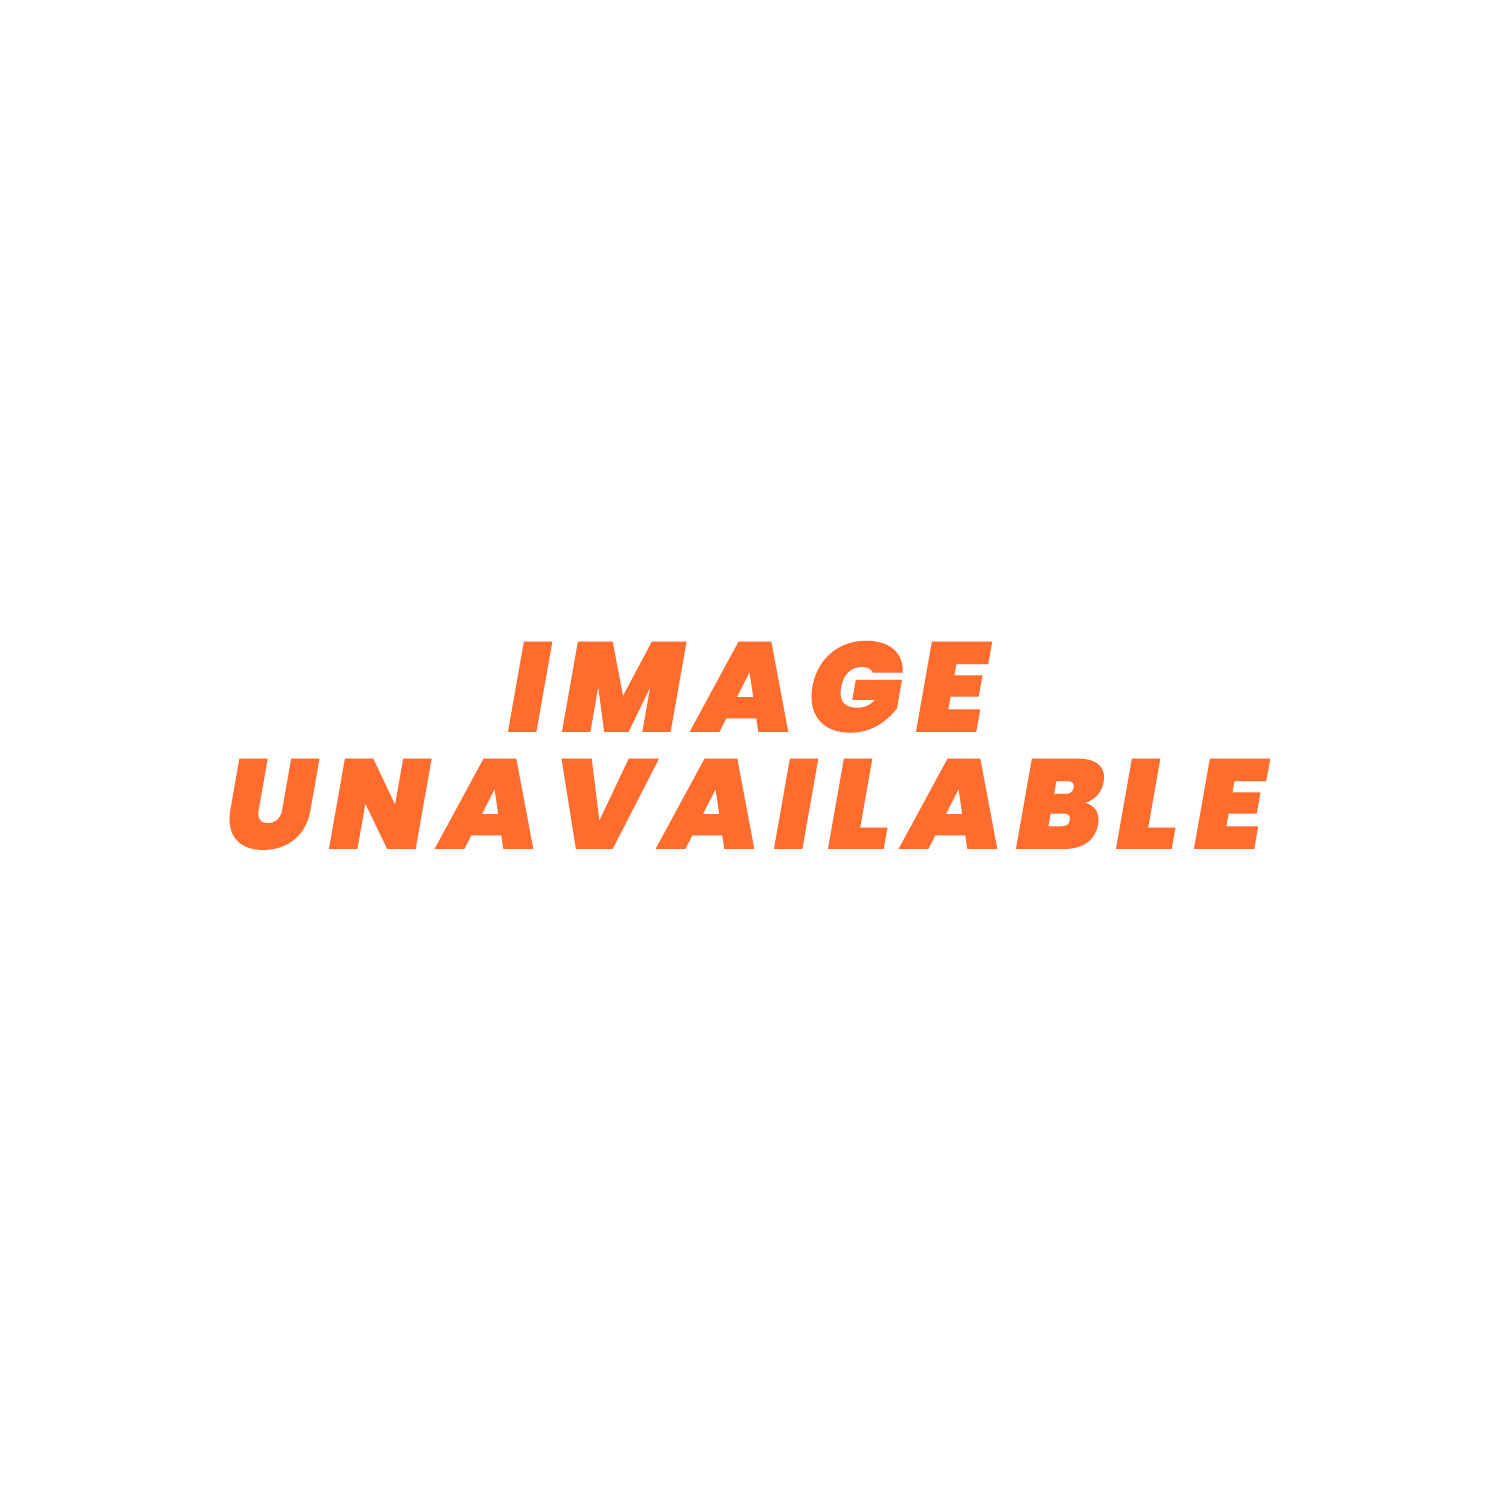 Protective Plastic Cap - 1559723 Side